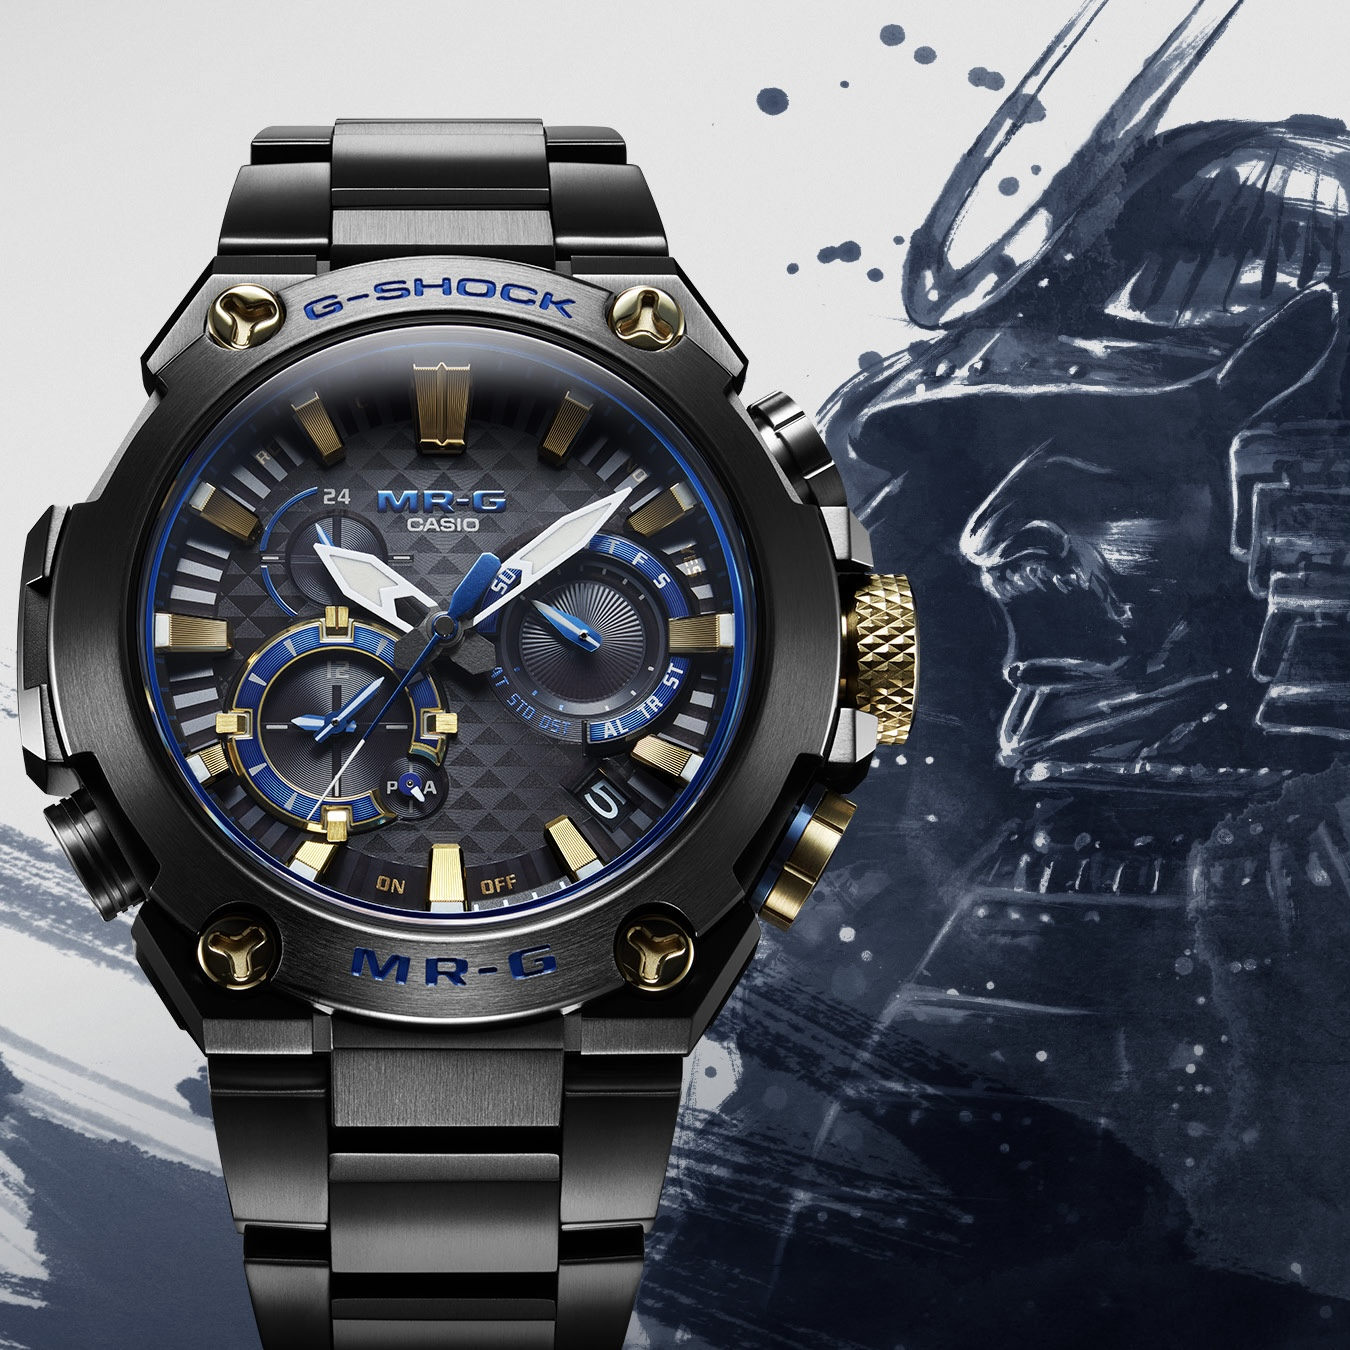 Casio G-SHOCK MR-G Series by G-SHOCK for use by 360 Magazine